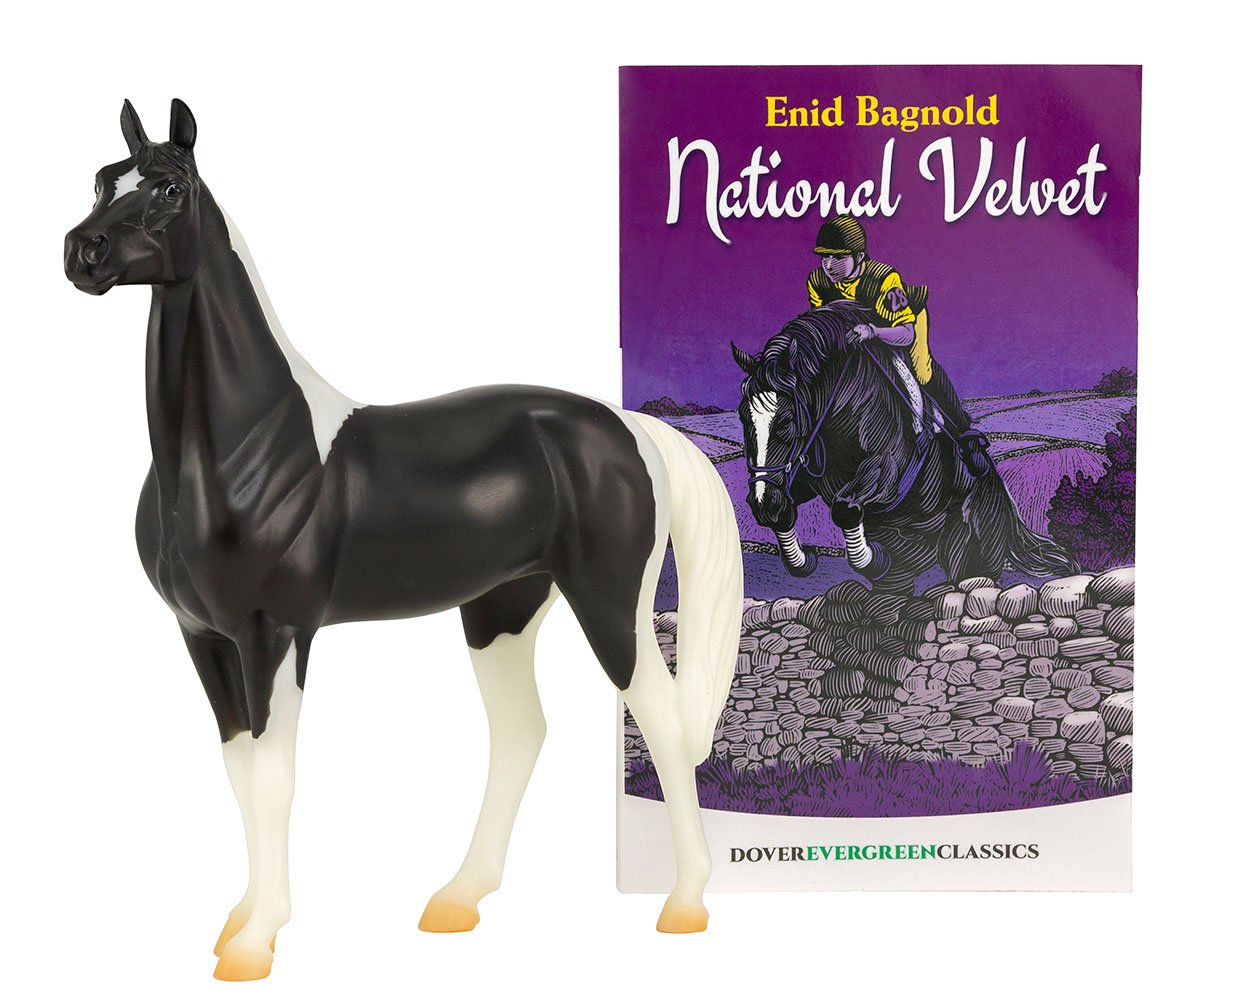 Breyer #6180 National Velvet Horse and Book Set - New Factory Sealed